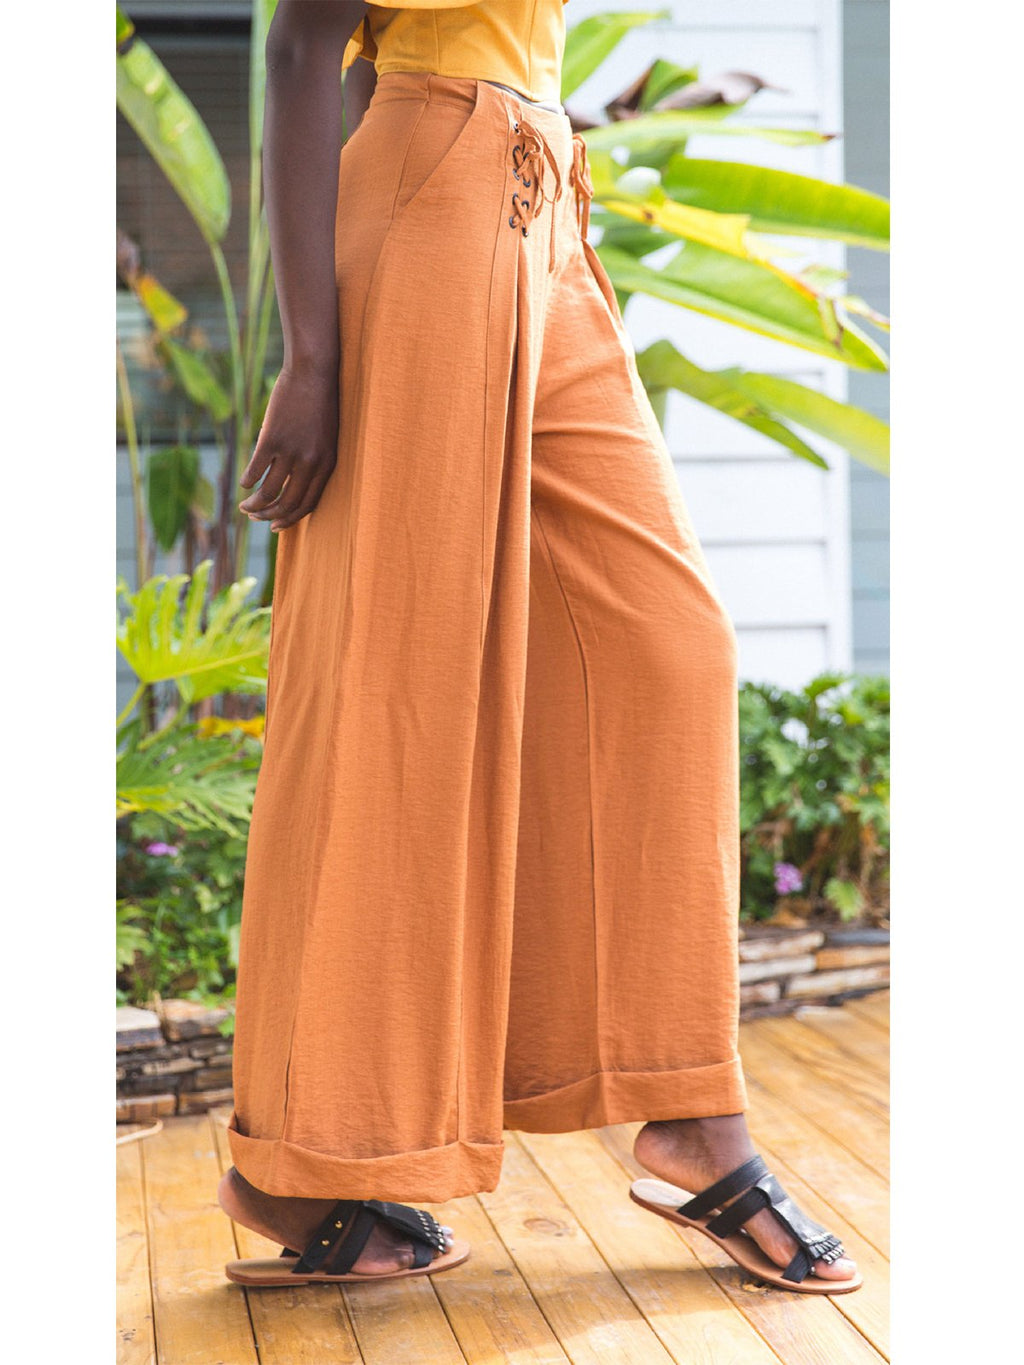 Orange Crisscross Detail Lace-Up Linen/Cotton Wide-Legged Pants